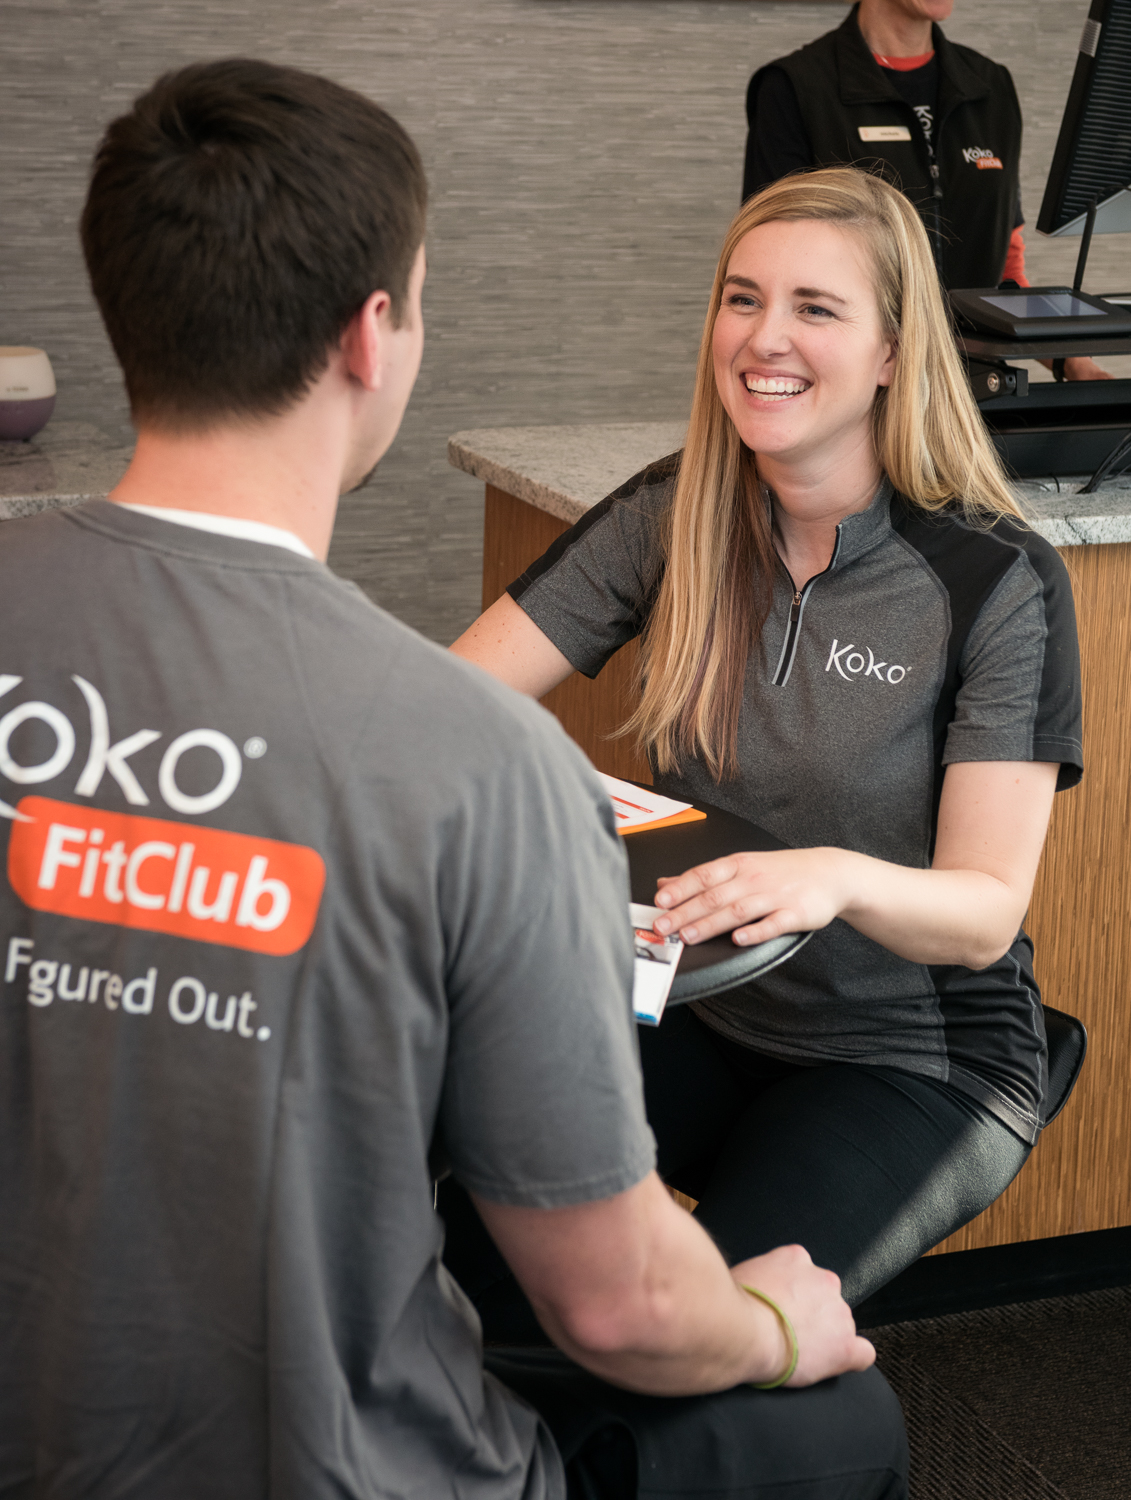 Diane Knutson of Koko Fit Club in Rapid City